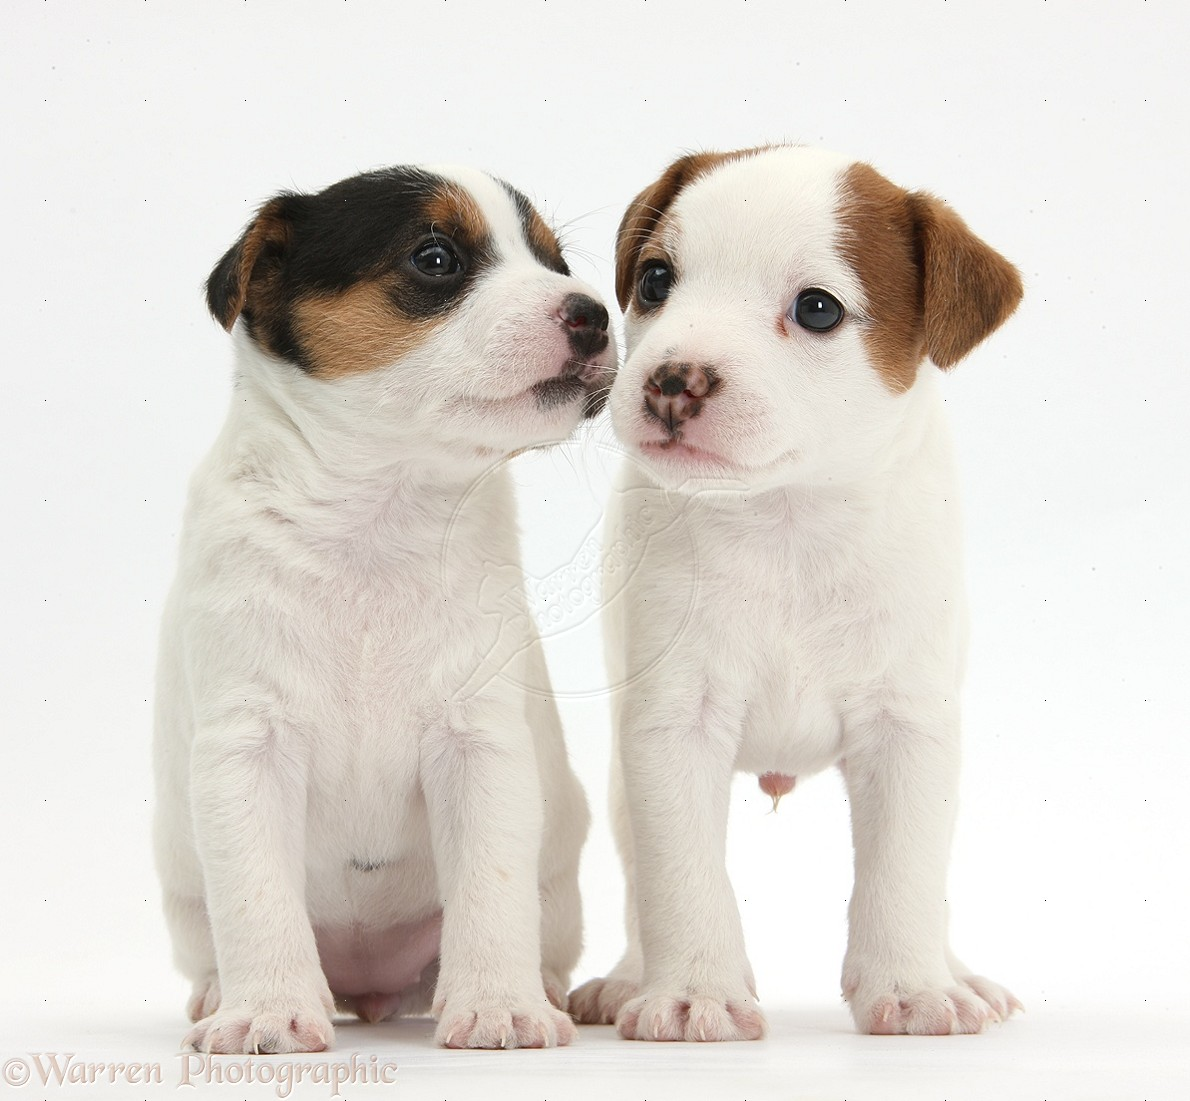 cachorrosJack-Russell-Terrier-puppies-4-weeks-old-white-background